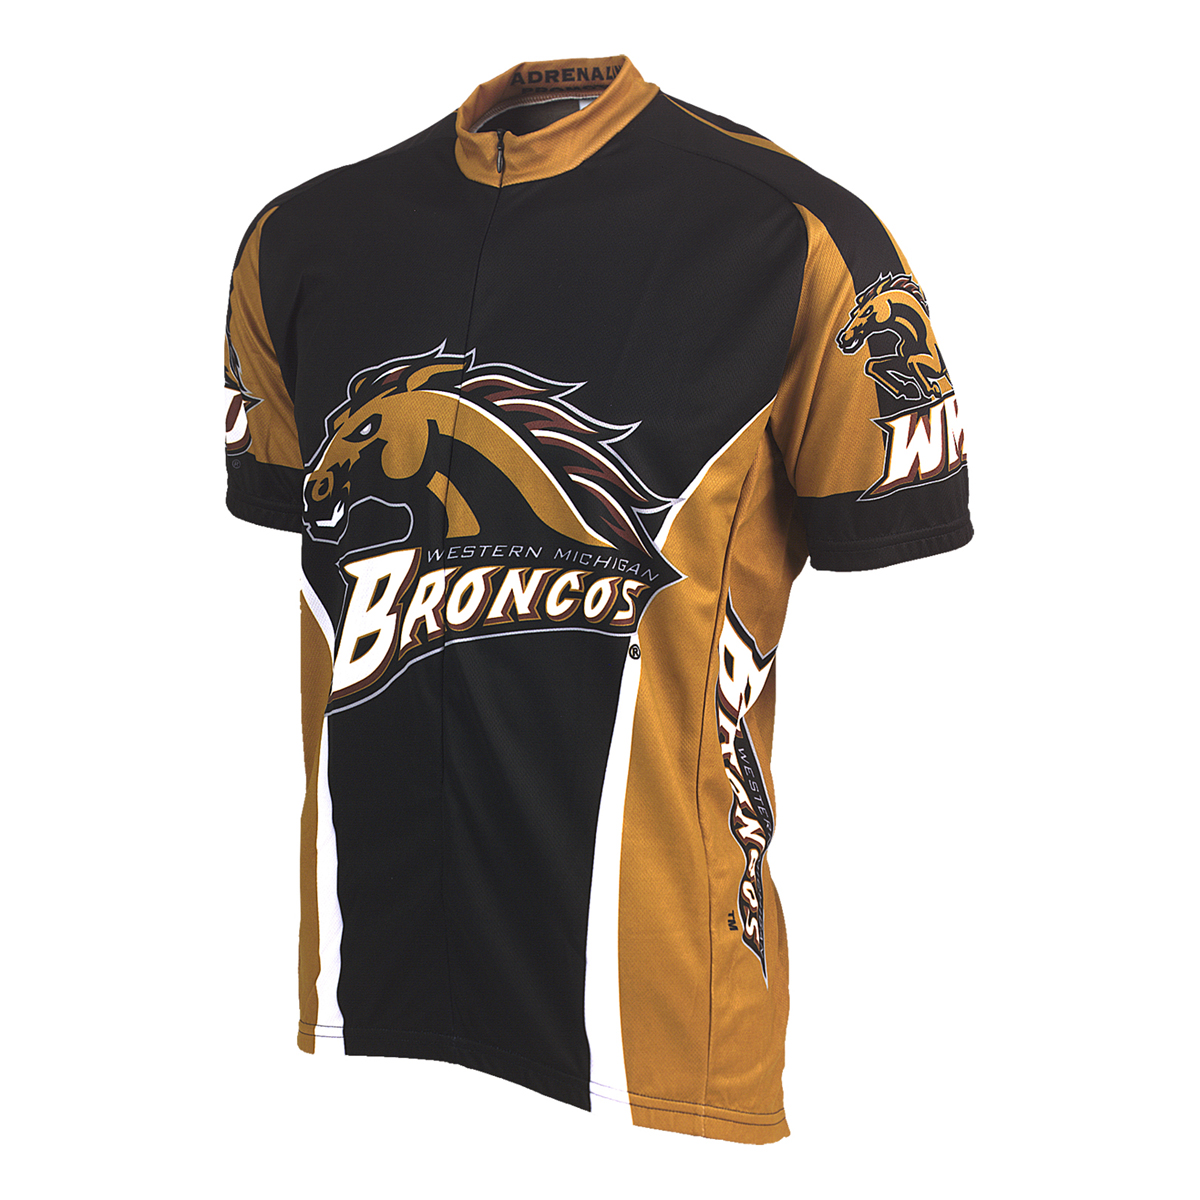 Adrenaline Promotions Western Michigan University Broncos Cycling Jersey